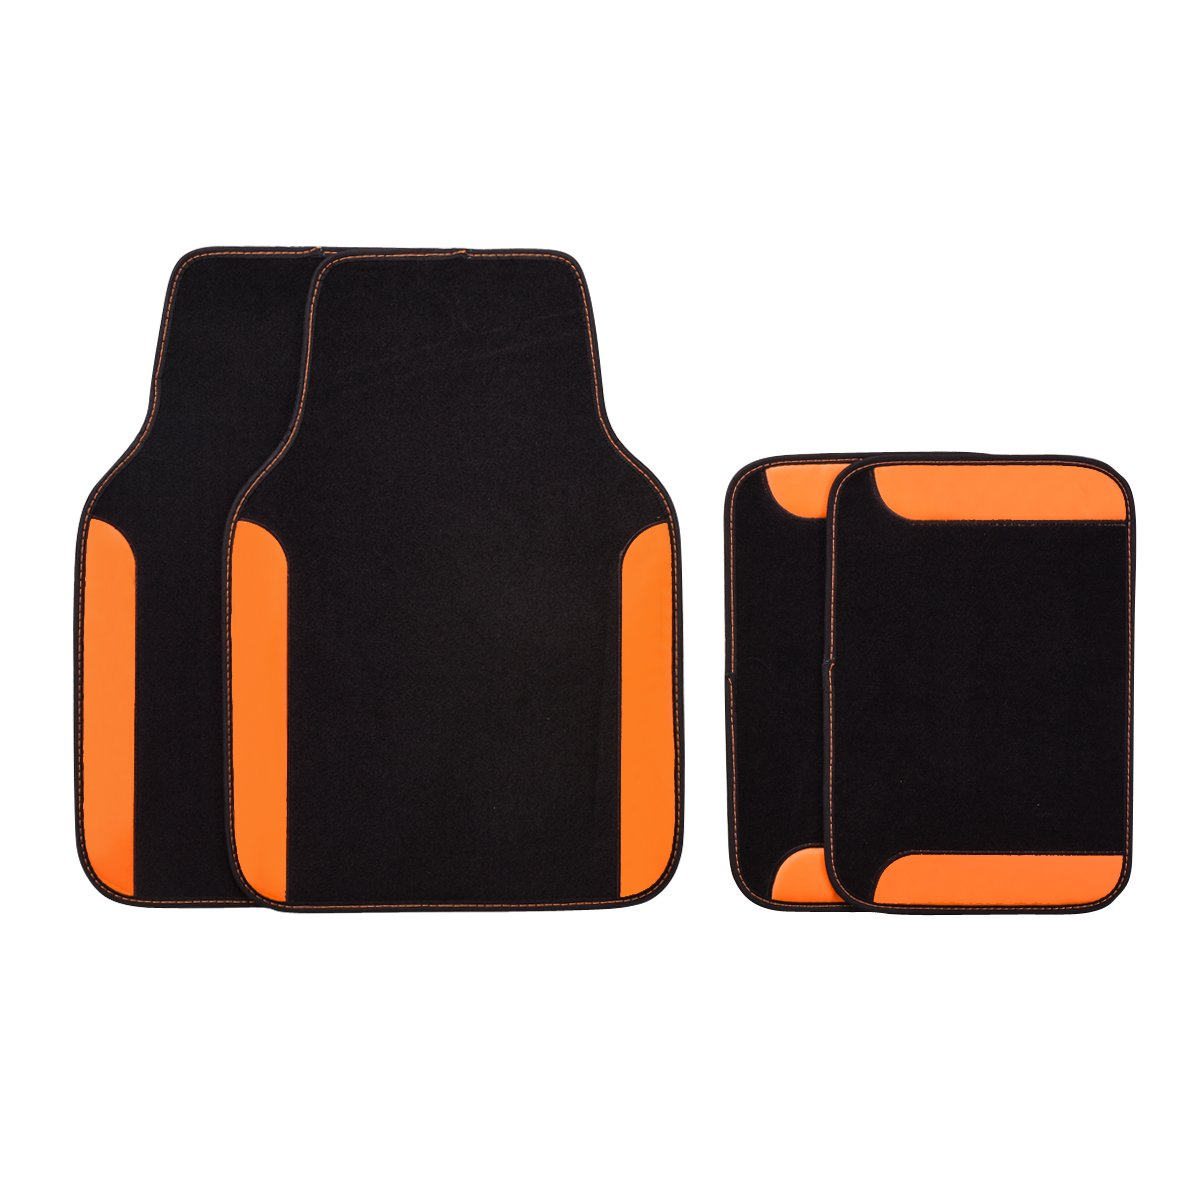 NEW ARRIVAL- CAR PASS RAINBOW WATERPROOF UNIVERSAL CAR FLOOR MATS (black and light orange color) LJ